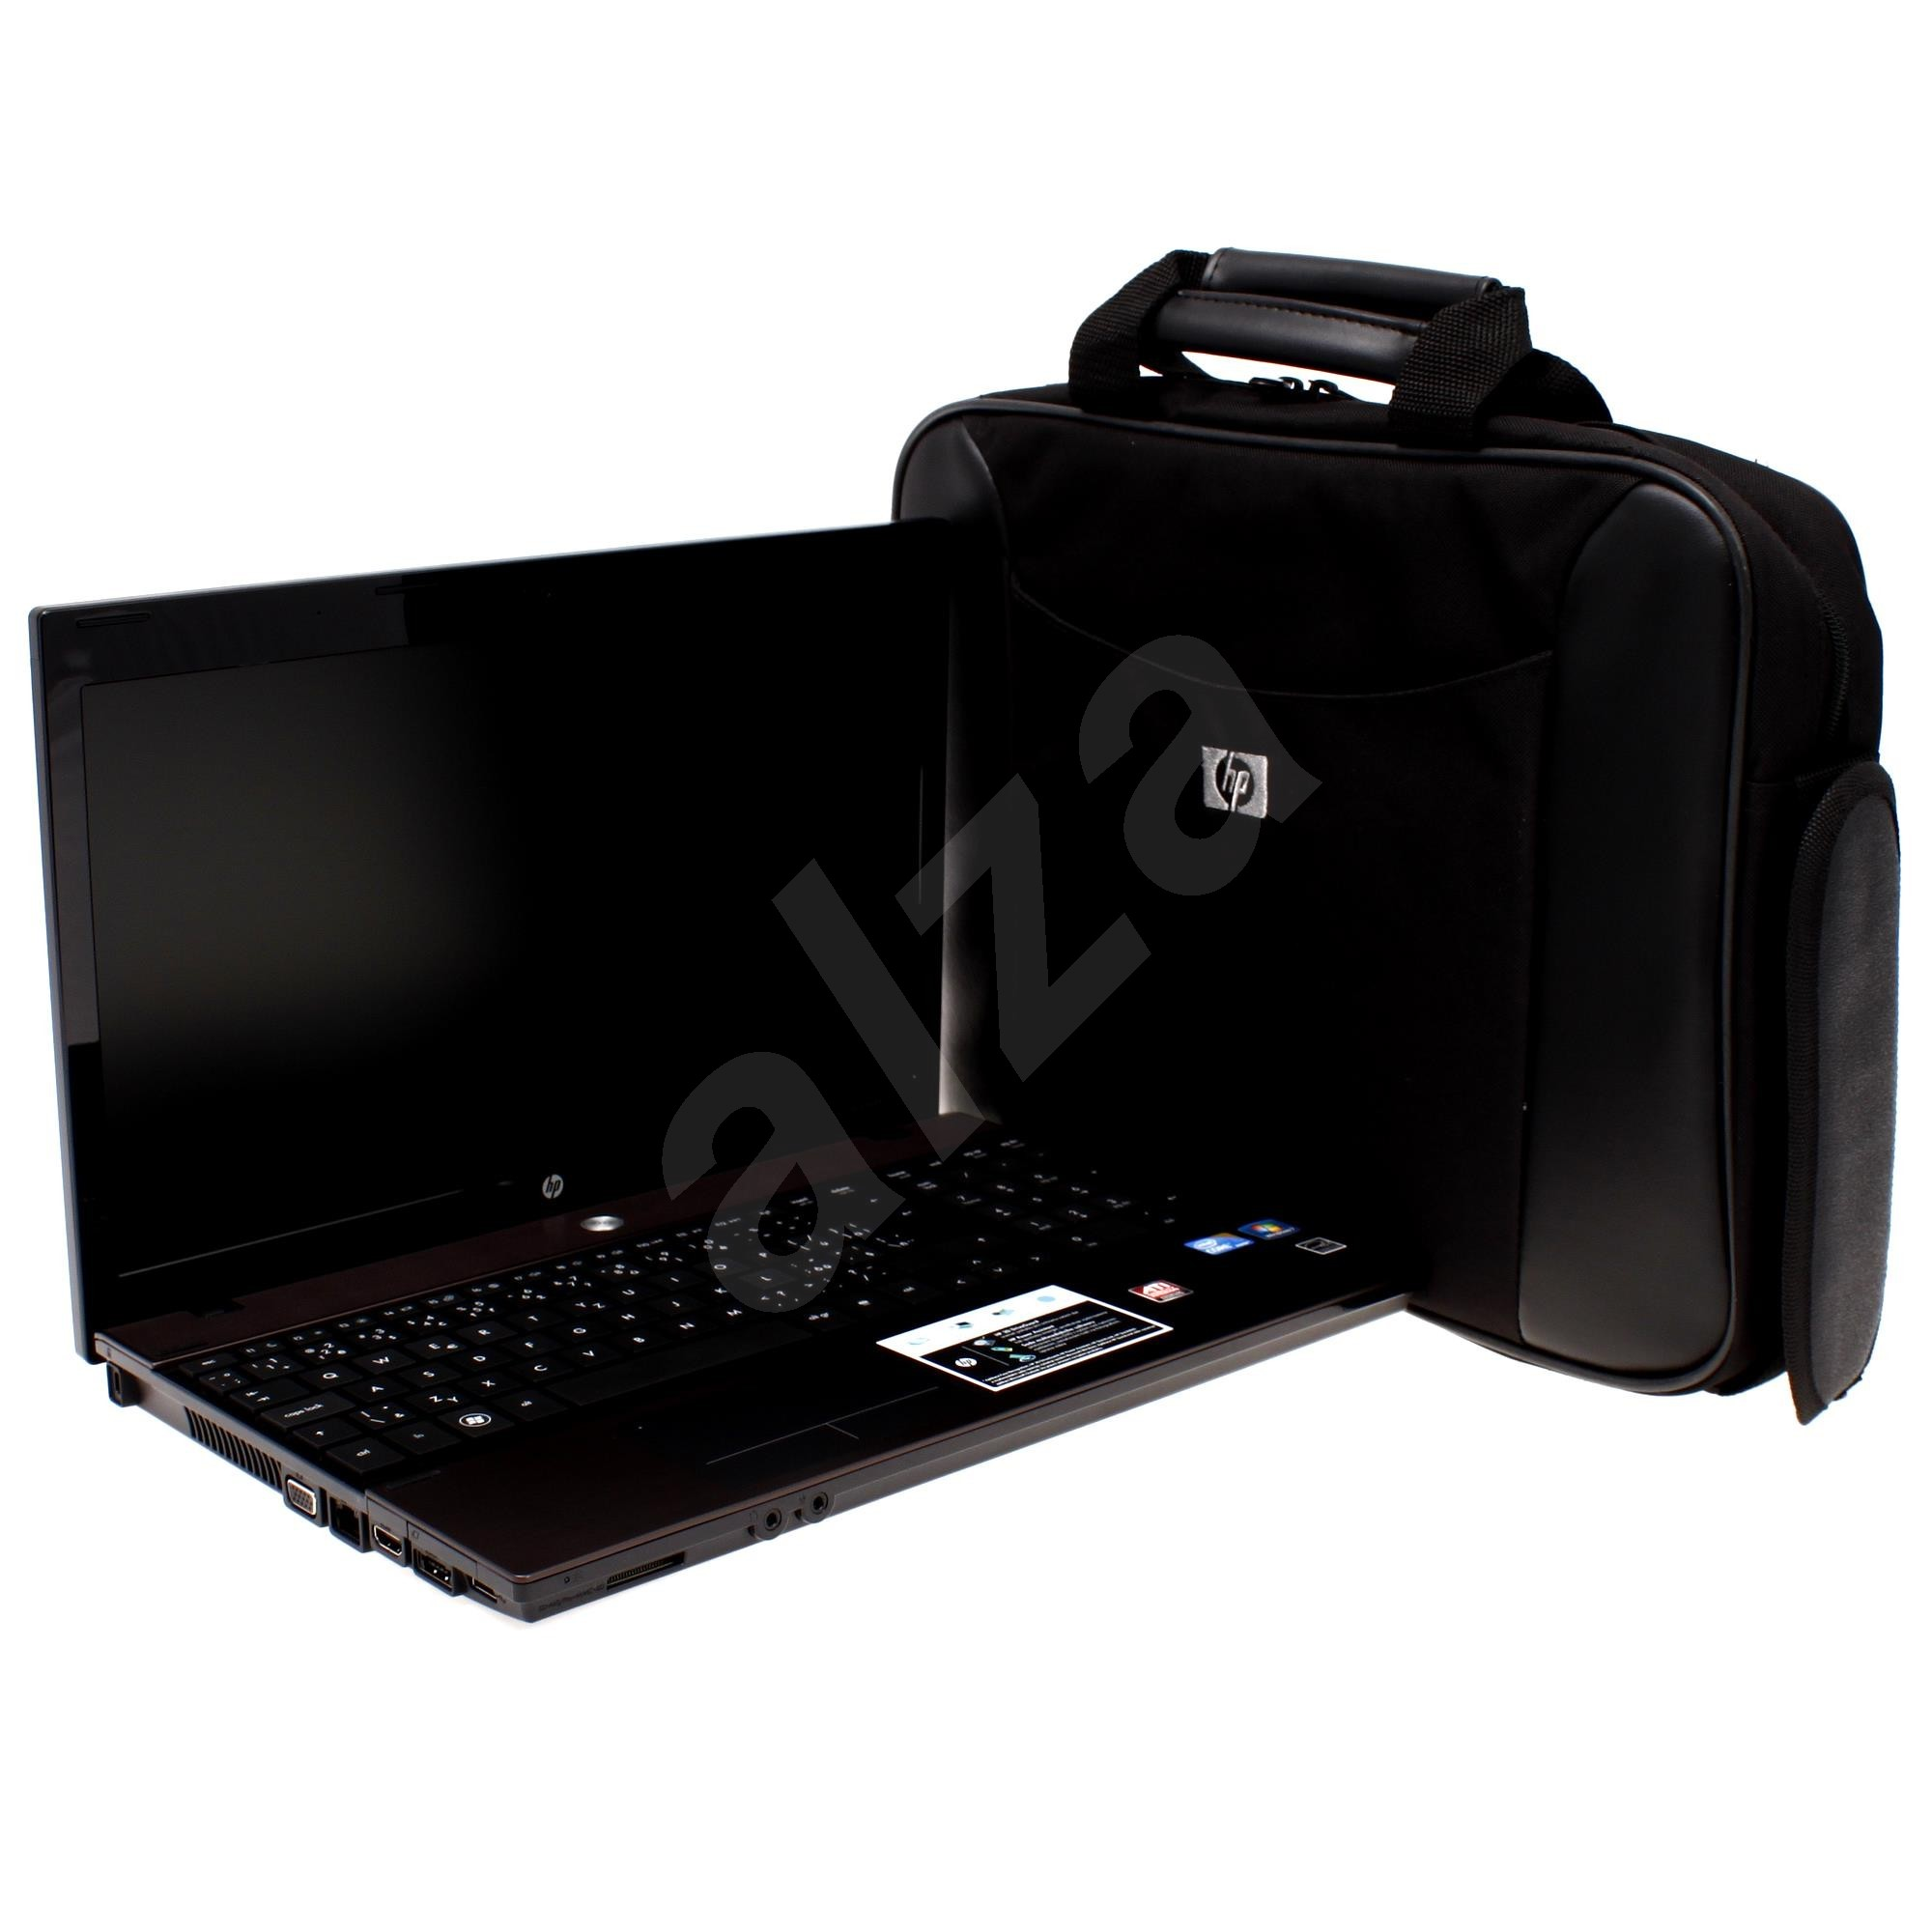 Related gallery:: Hp probook 4520s wifi driver windows 7